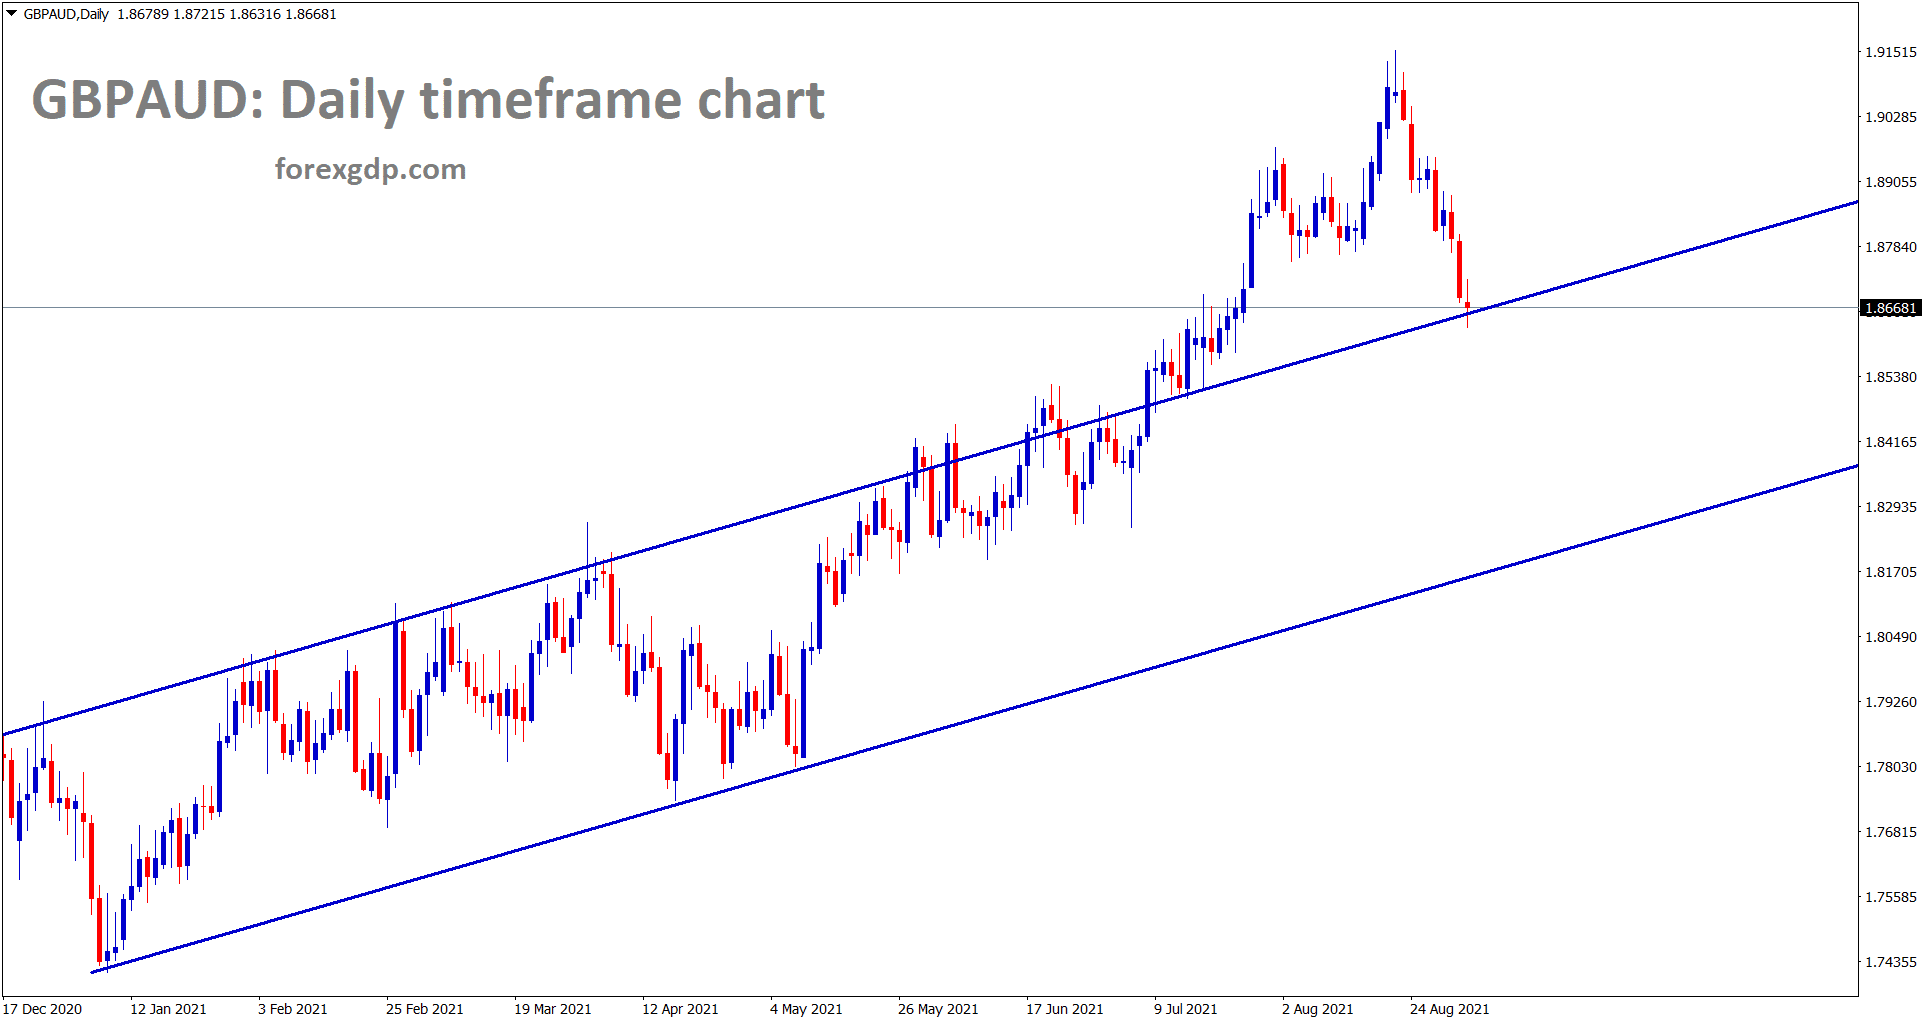 GBPAUD has reached the retest area of the previous broken resistance level